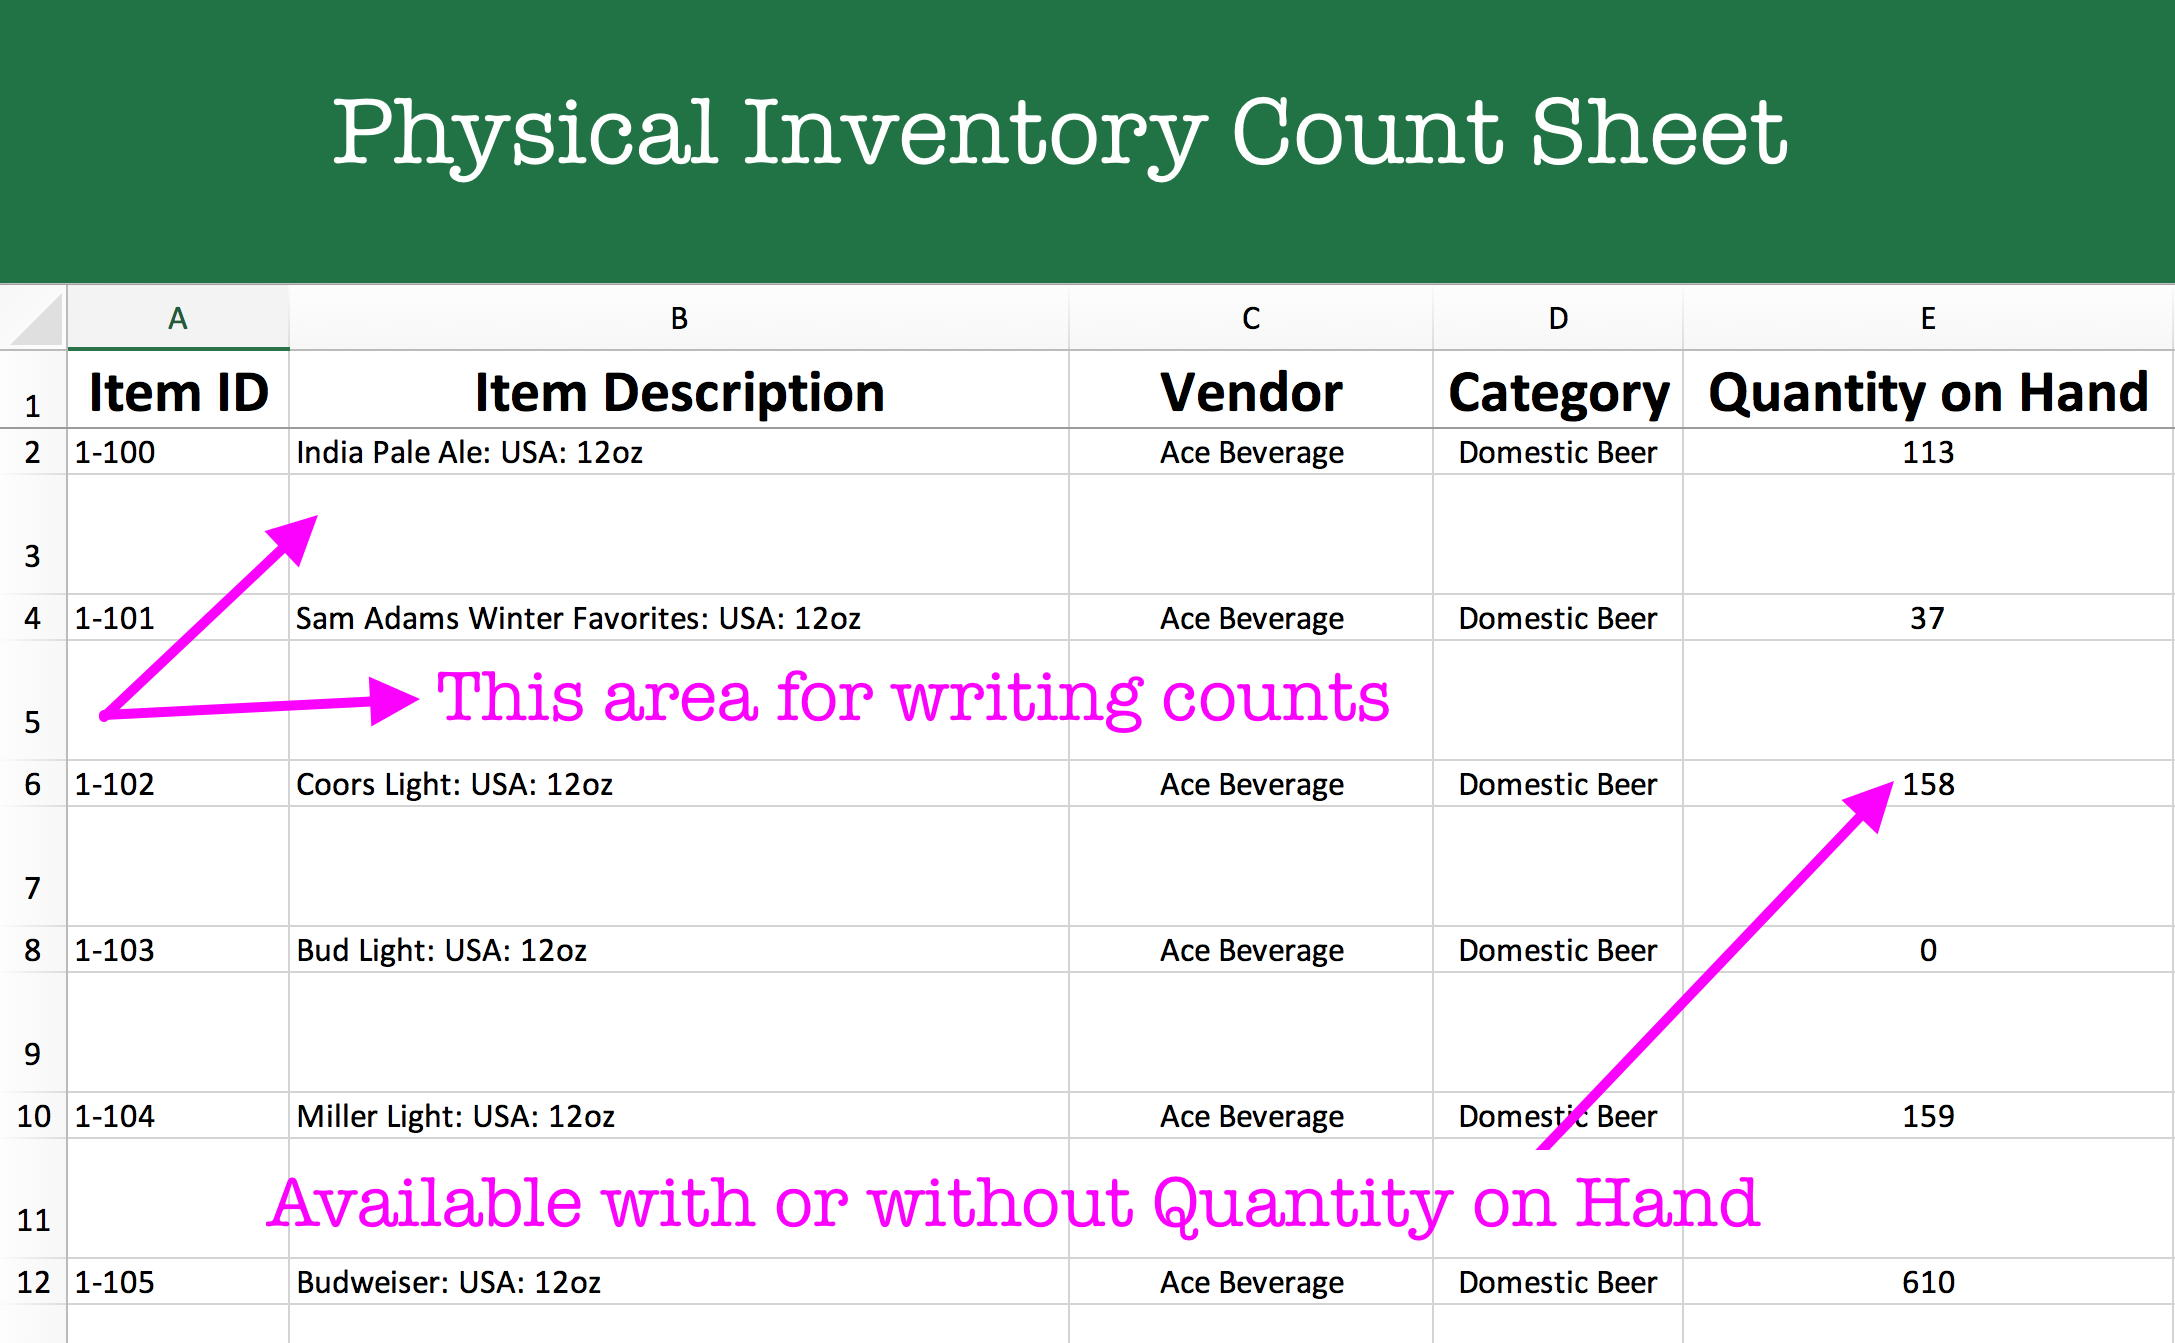 Inventory Control Spreadsheet - Physical Inventory Count Worksheet